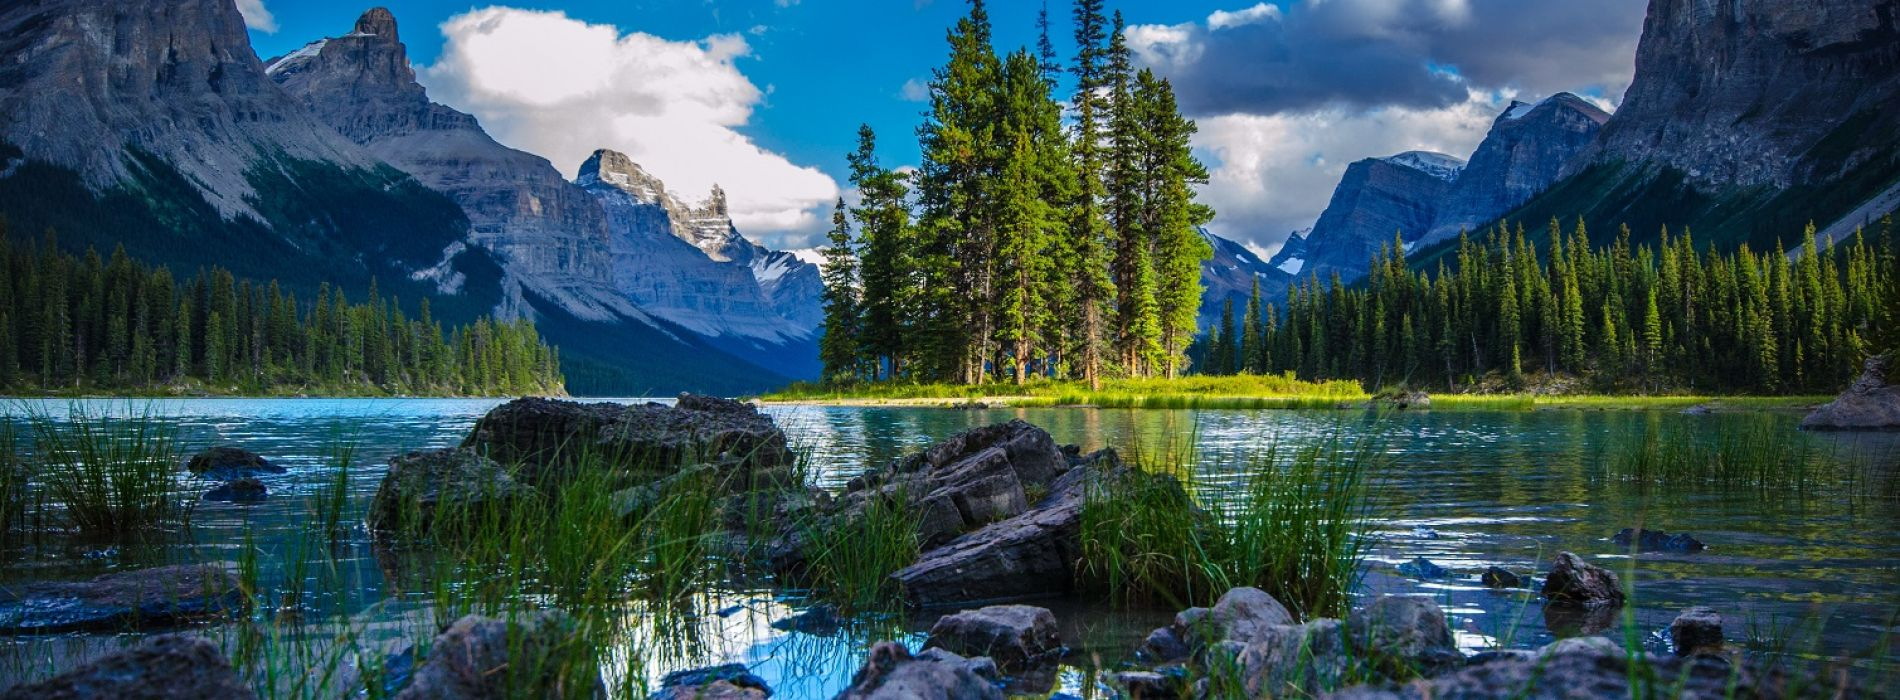 Canadian Rockies Vacations Guide Banff National Park Canadian